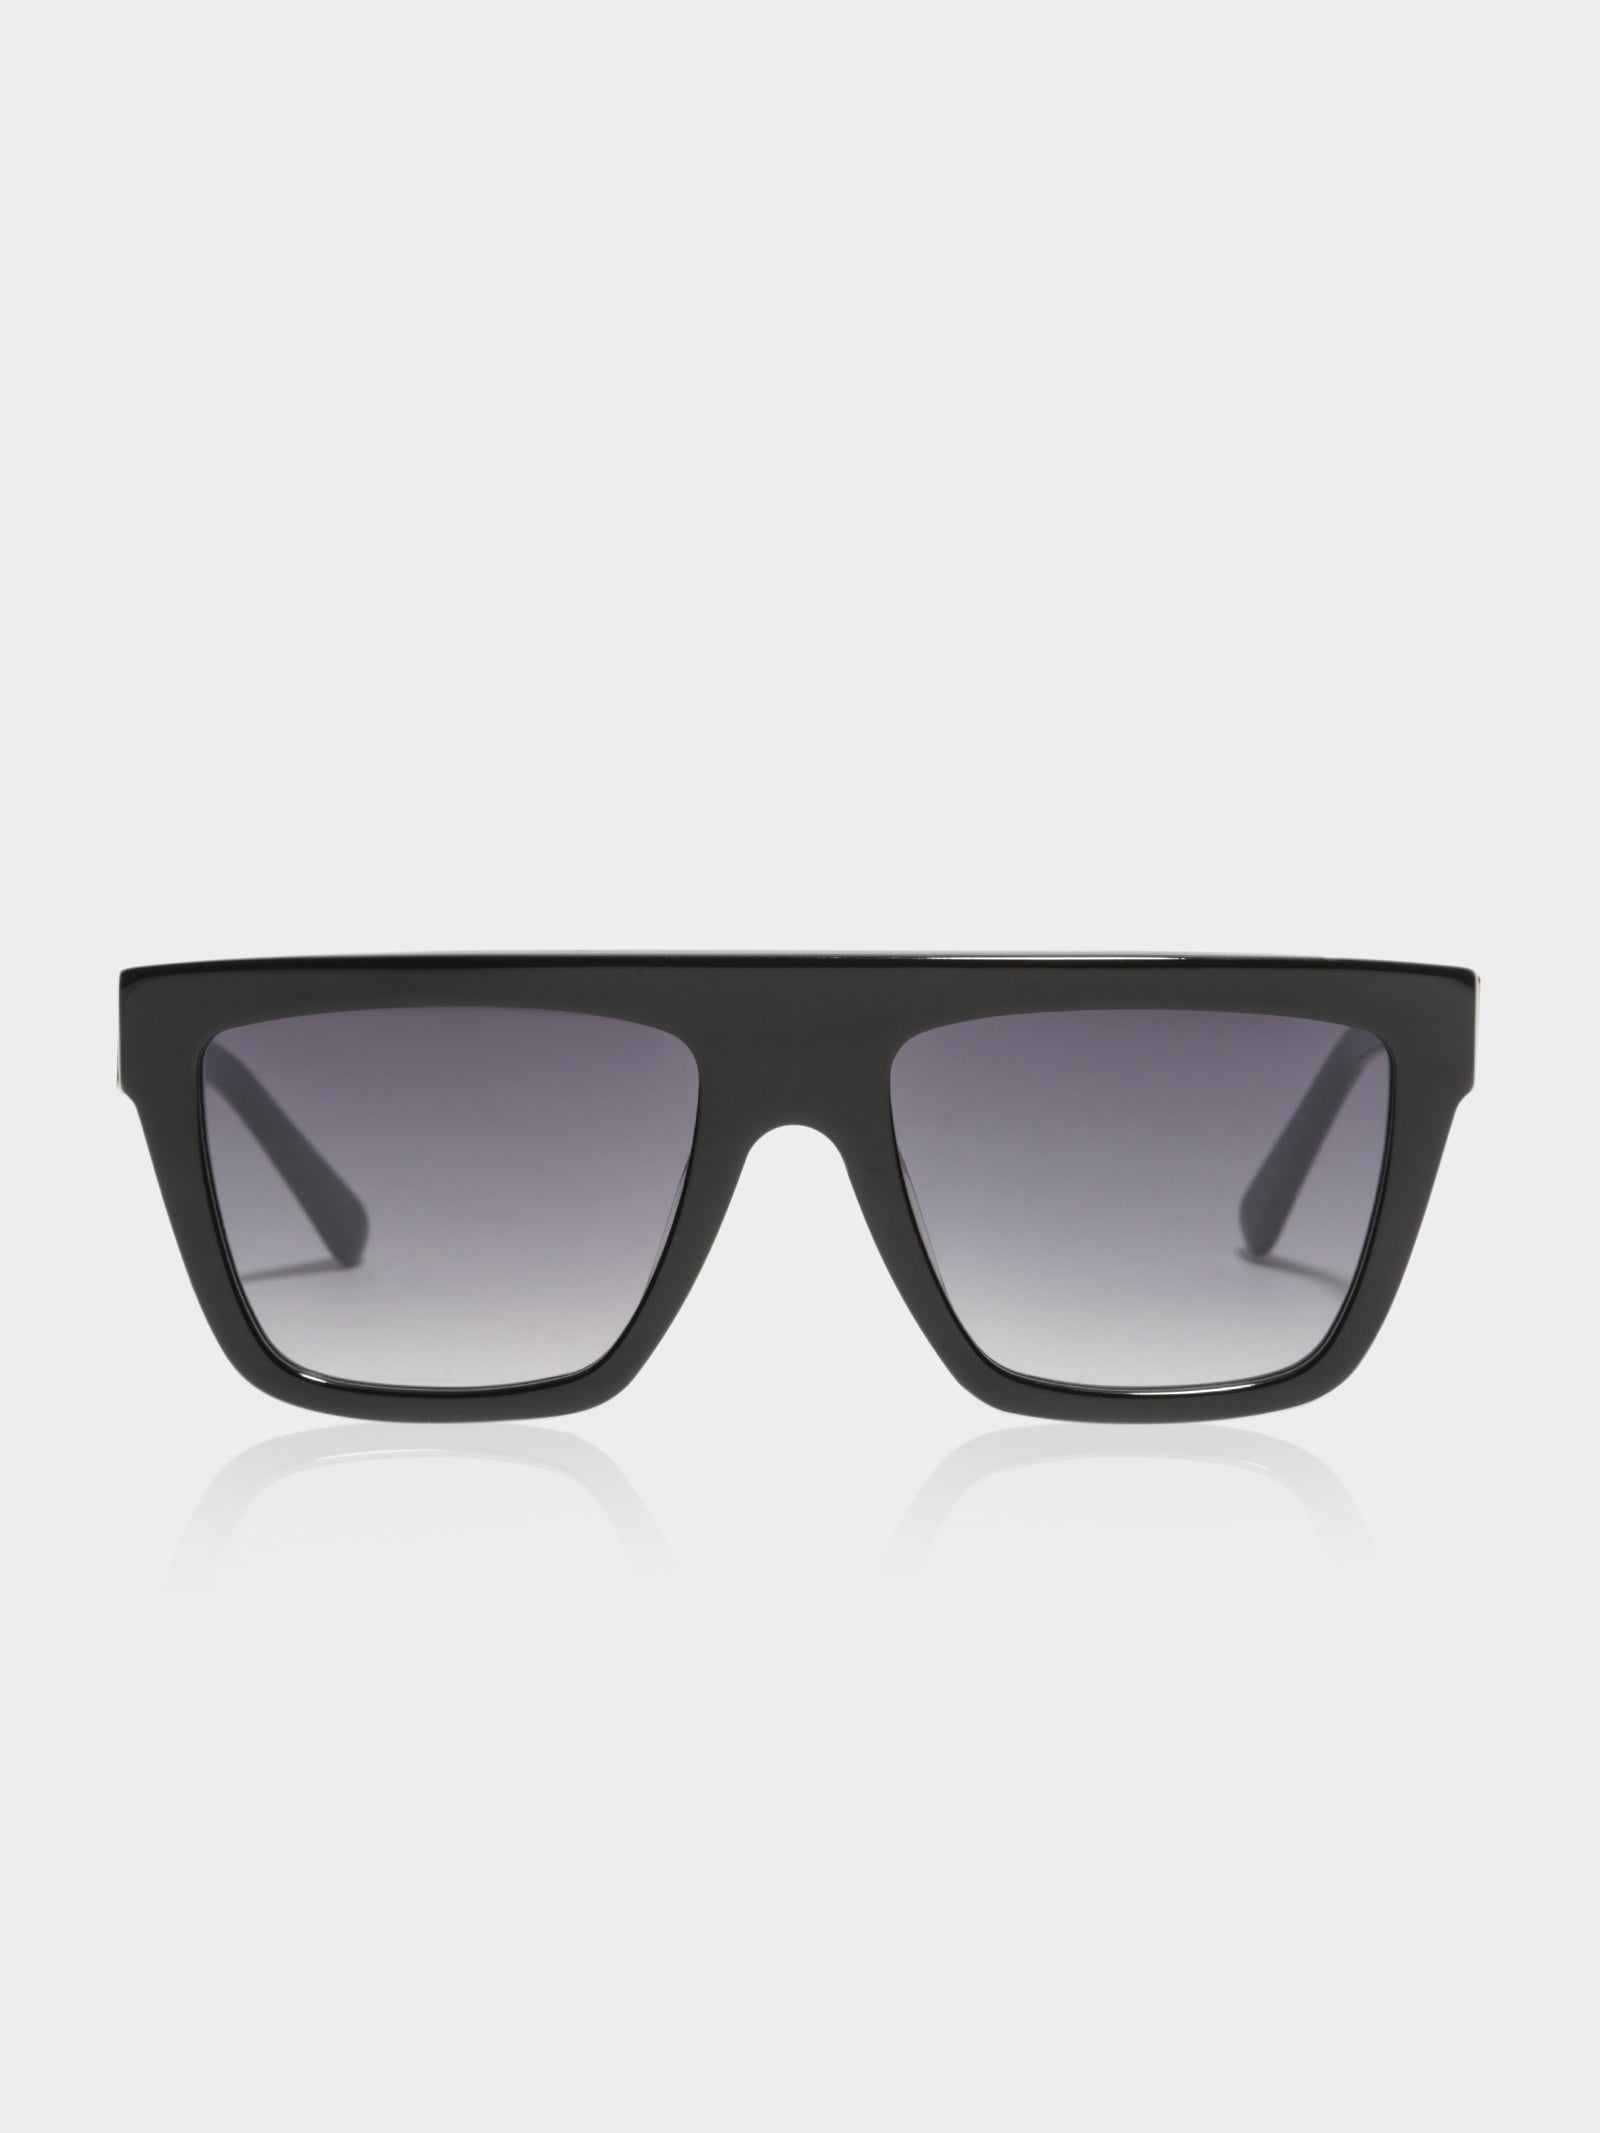 Mooski Sunglasses in Black